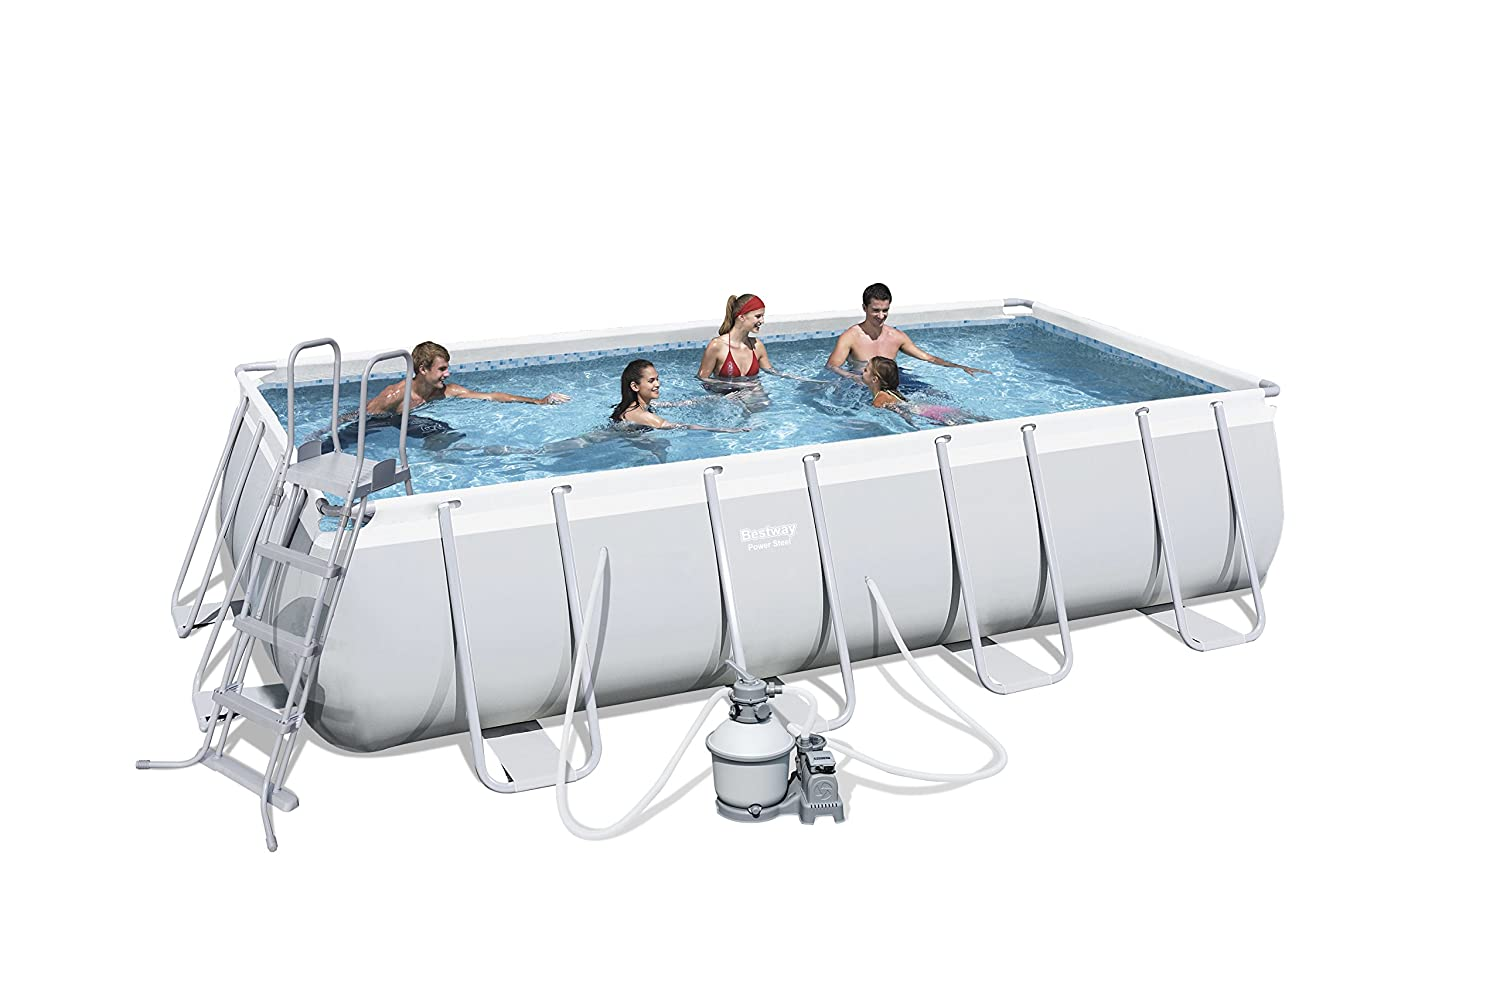 Bestway Power Steel Piscina Piscina con anillo hinchable Rectangular pool L cm